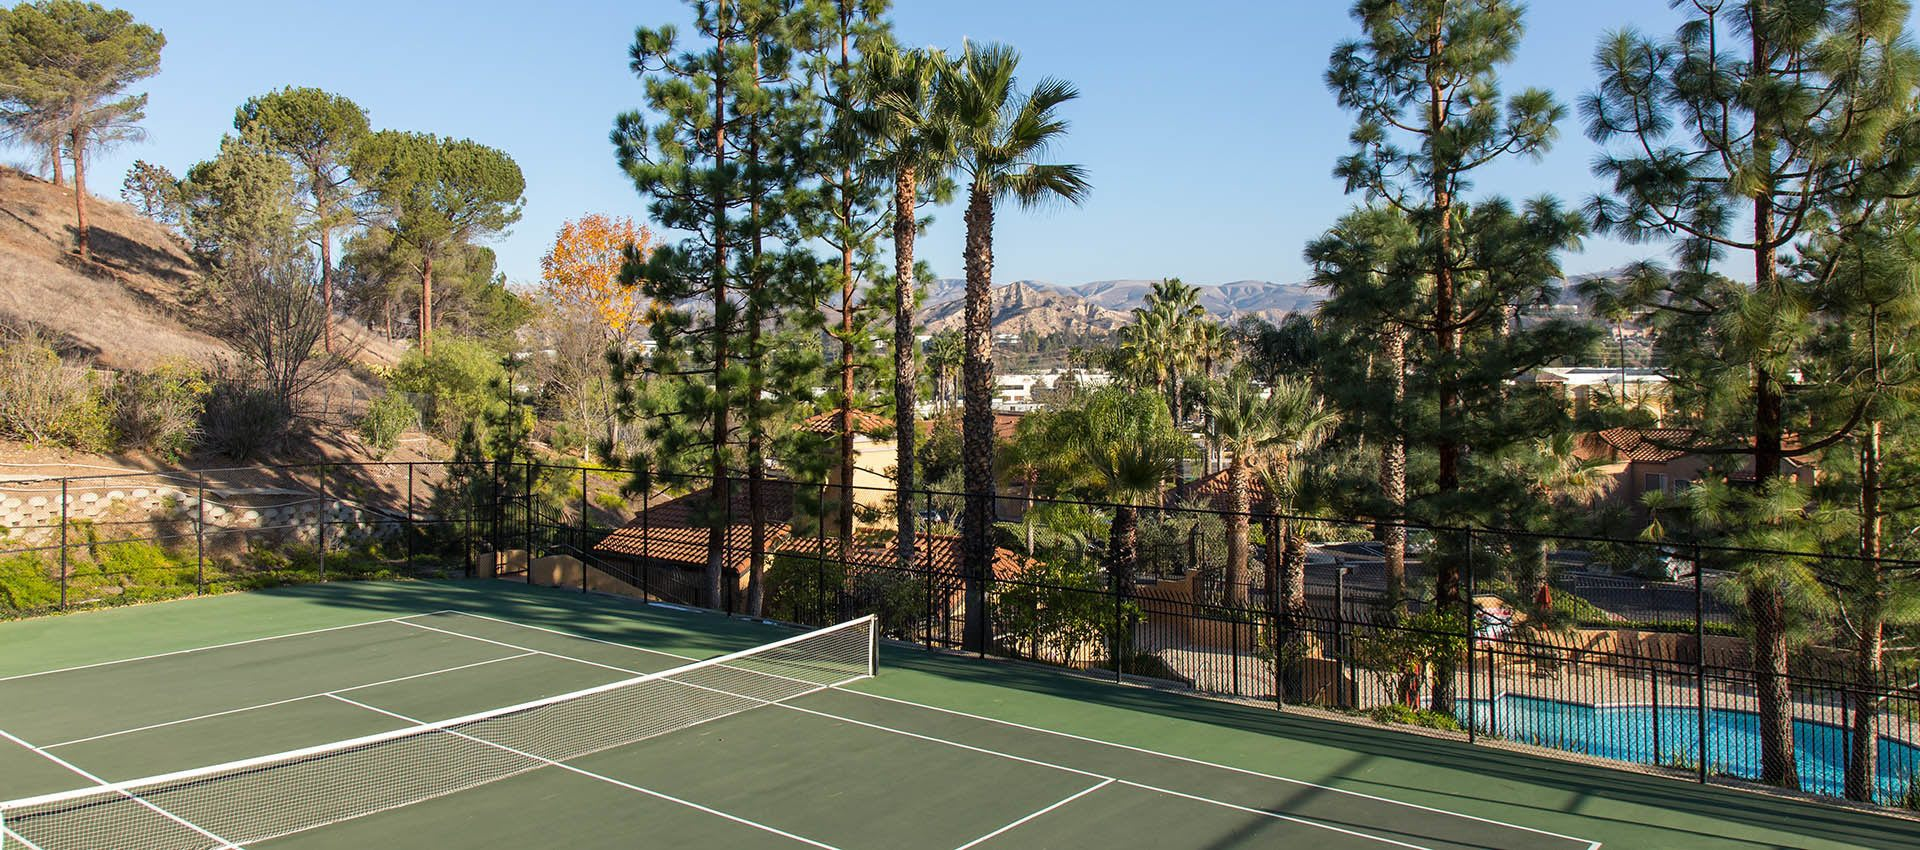 Tennis courts at Shadow Ridge Apartment Homes in Simi Valley, CA